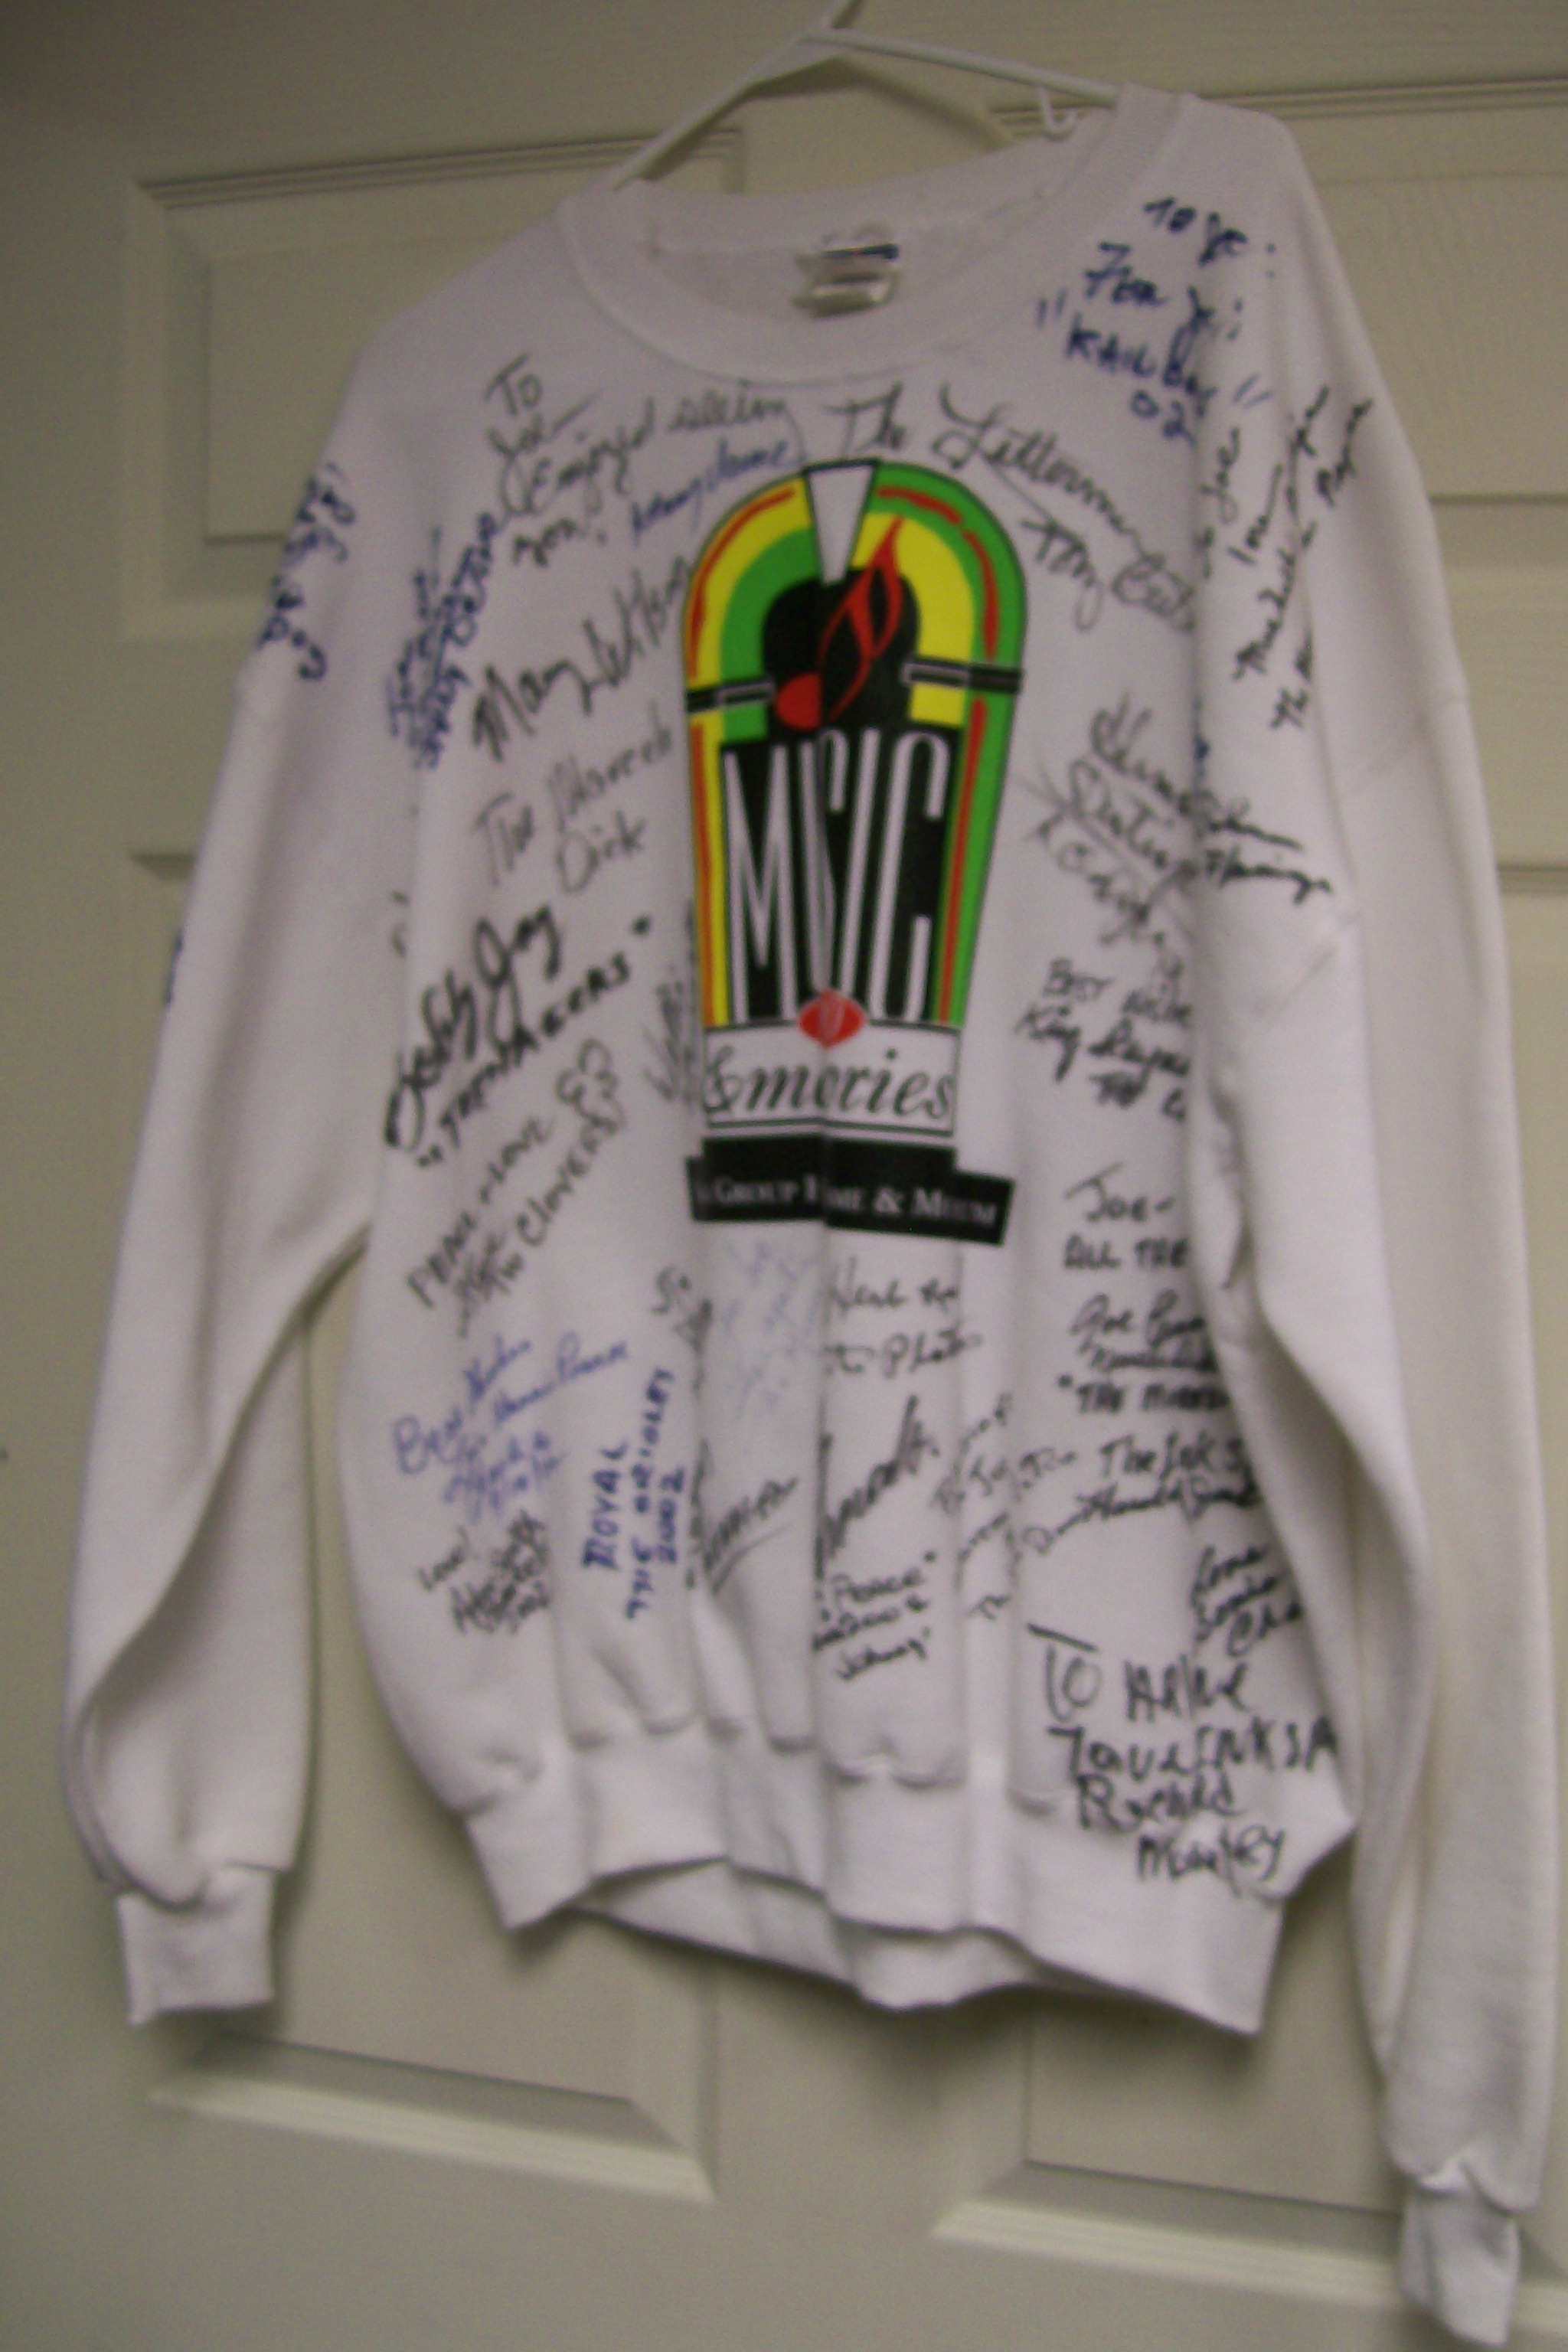 Vocal Group Hall Of Fame& Museum Sweat Shirt 2002 33 Autographs